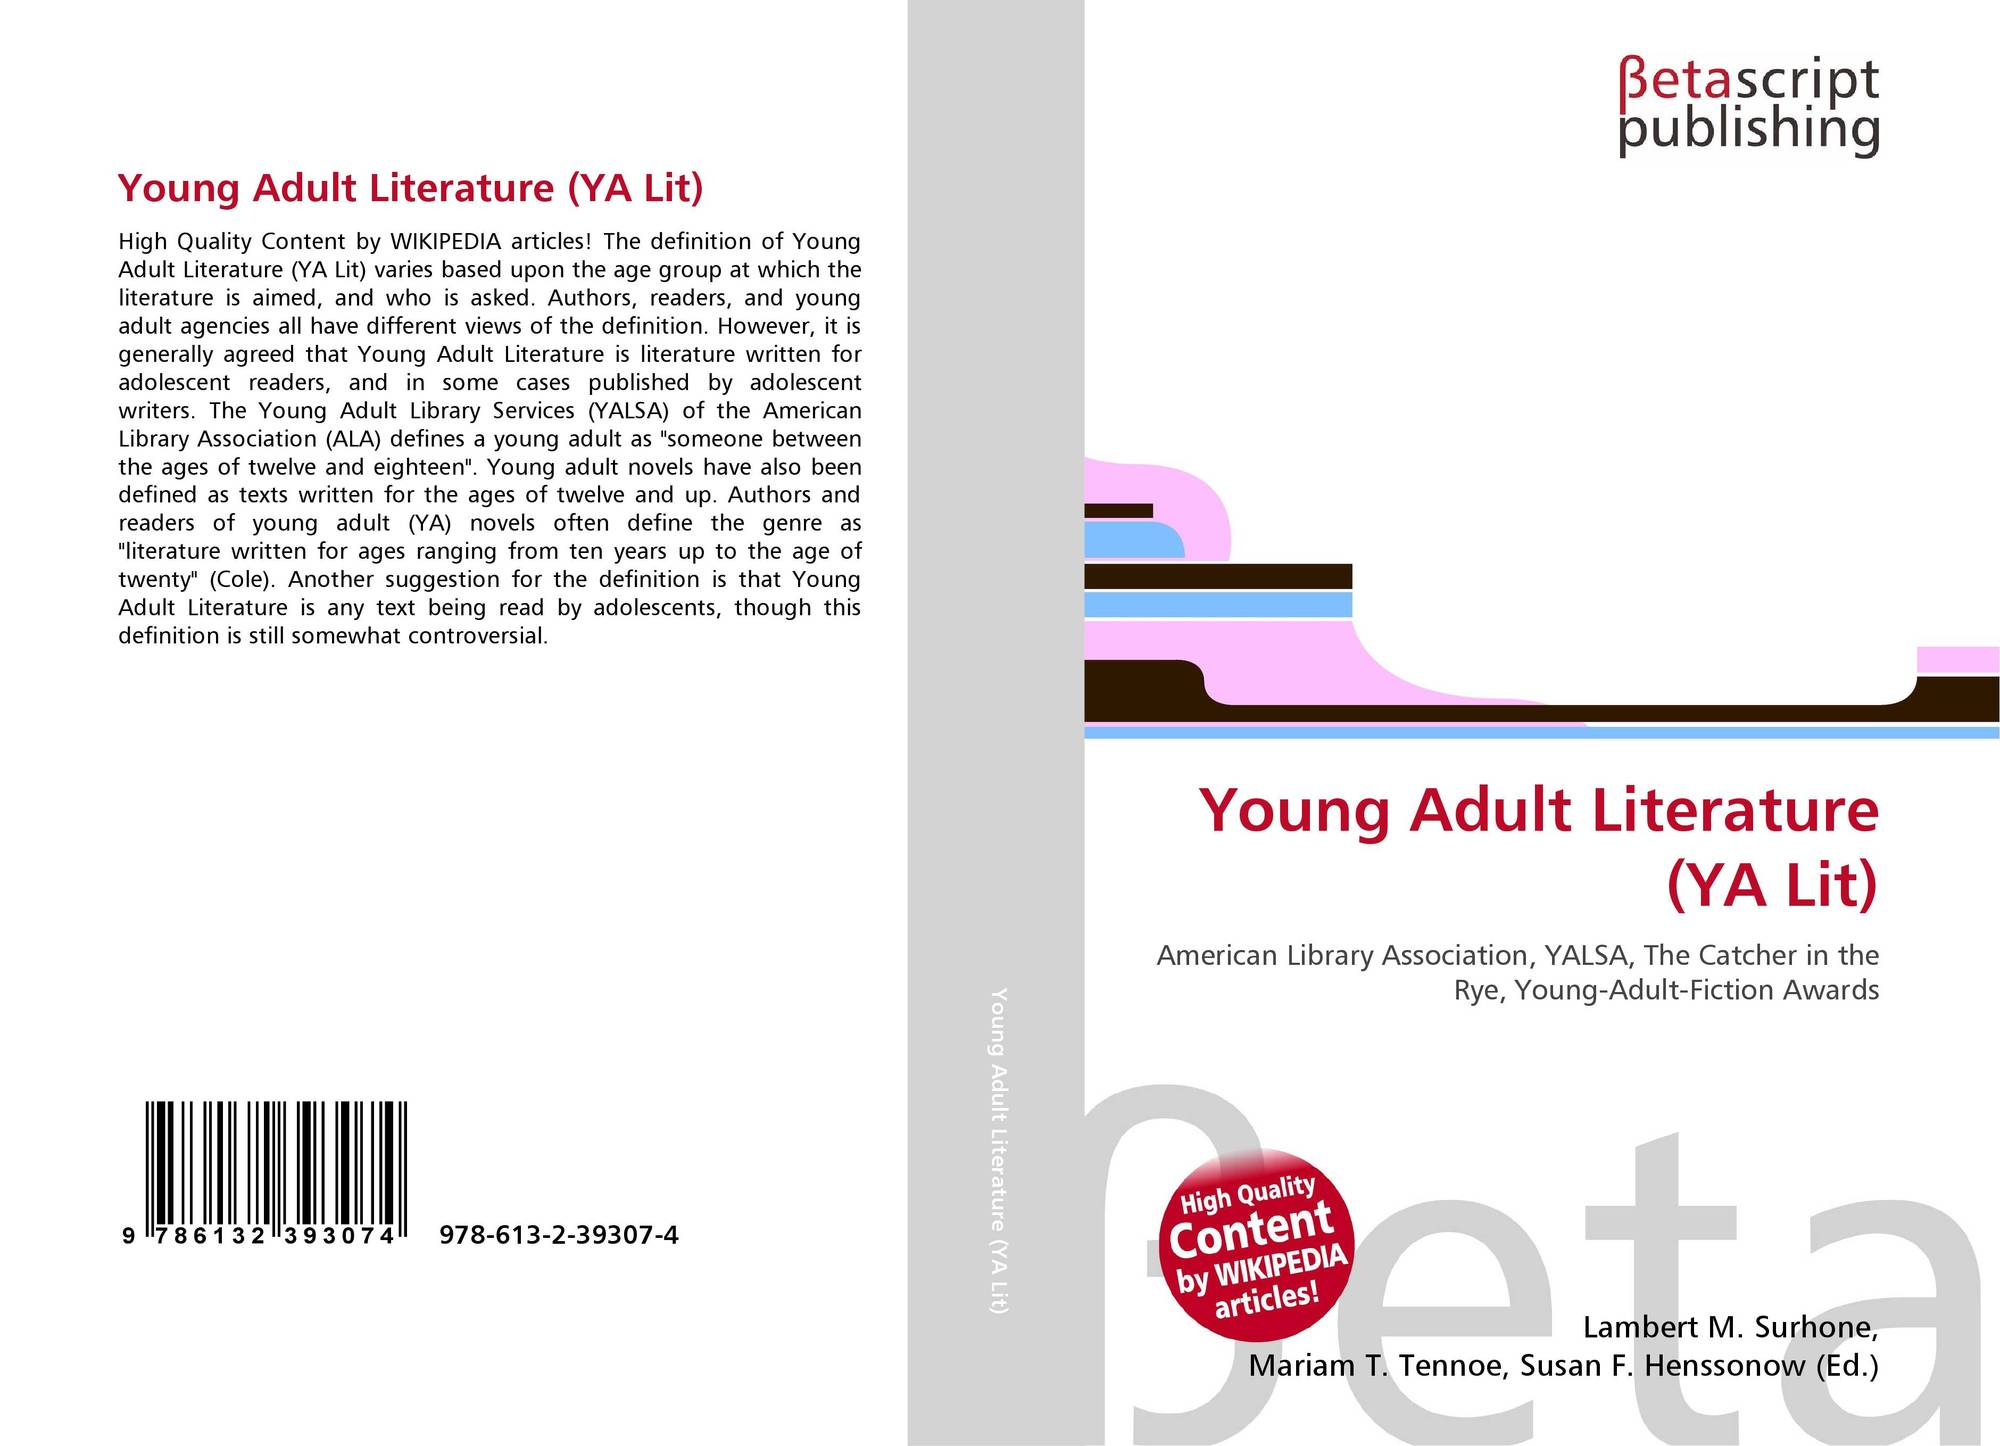 Adult library association #12